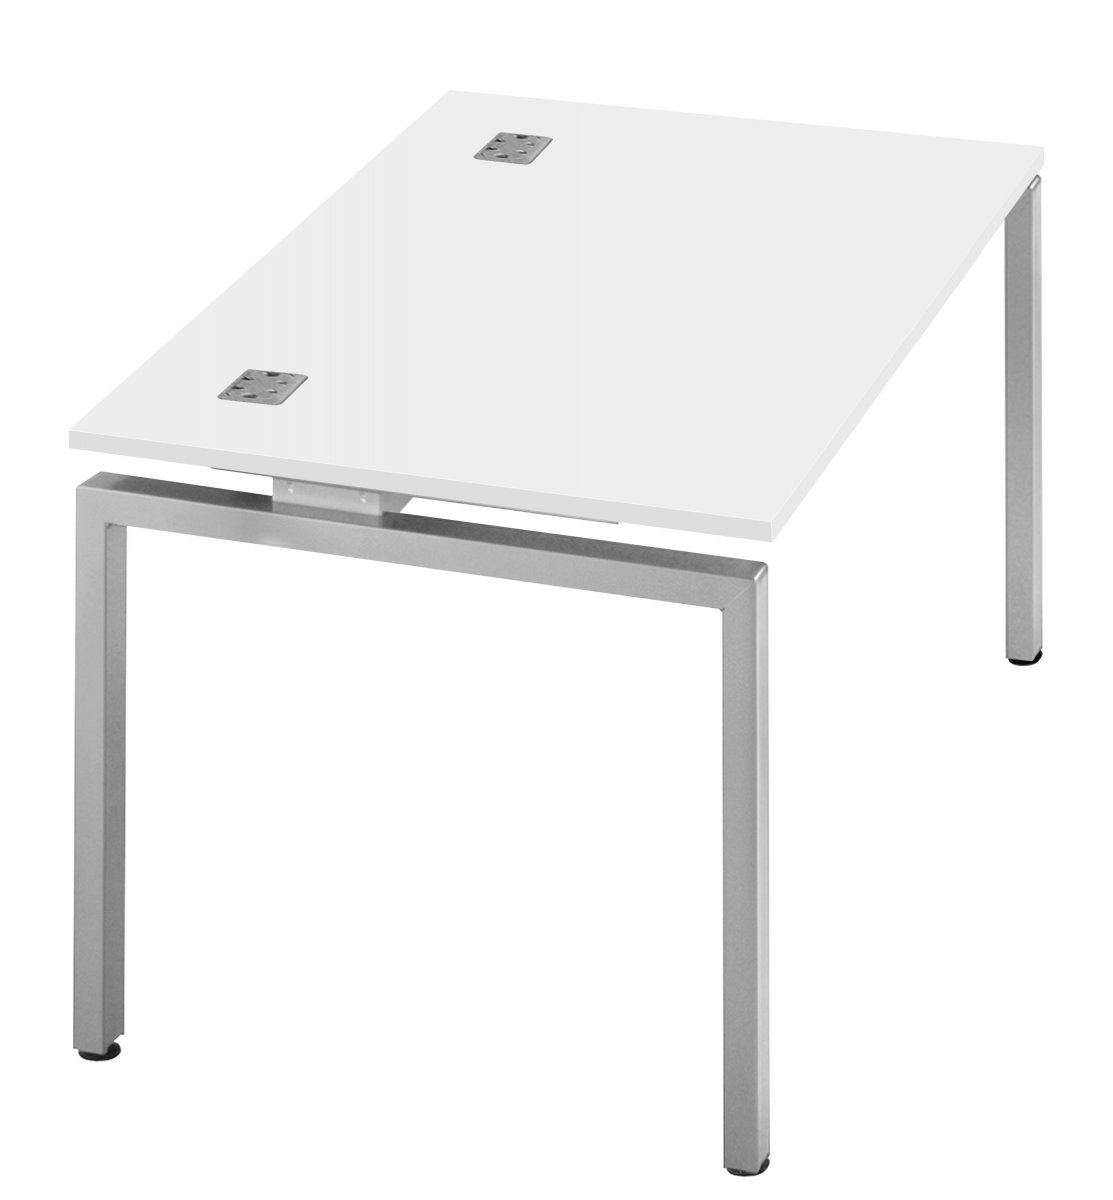 Fraction Bench Single 140 Starter Workstation - White